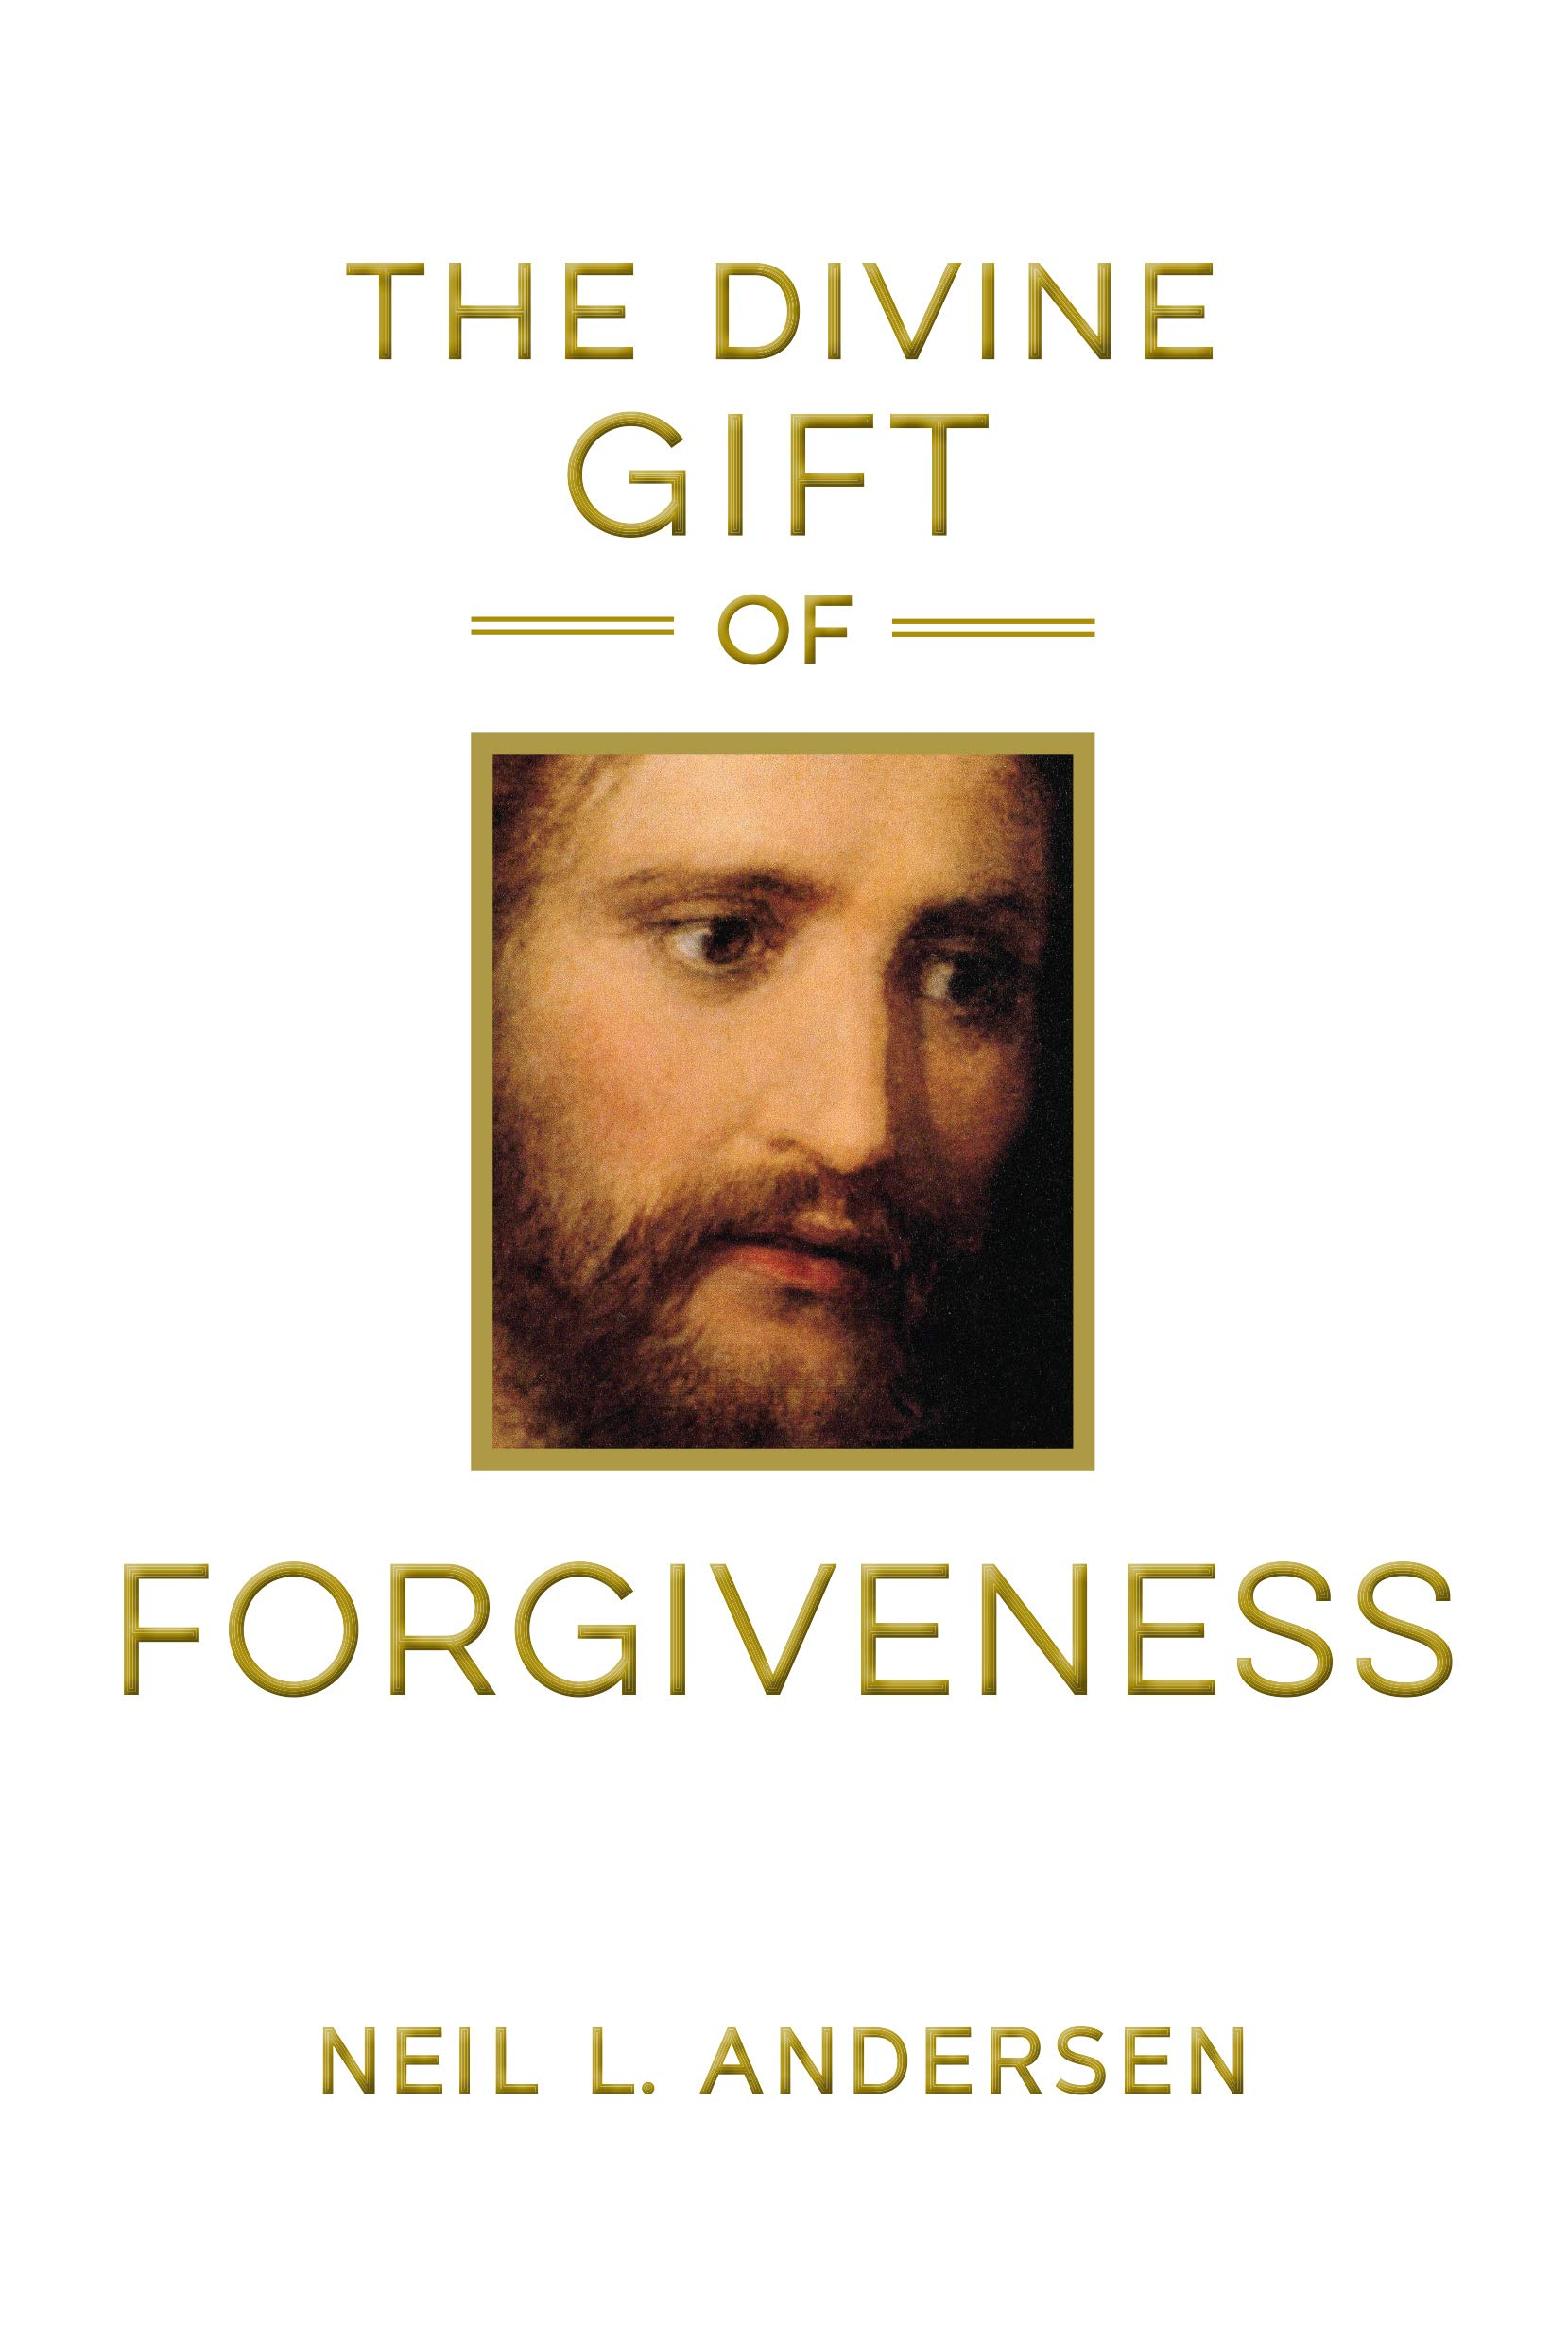 The Divine Gift of Forgiveness